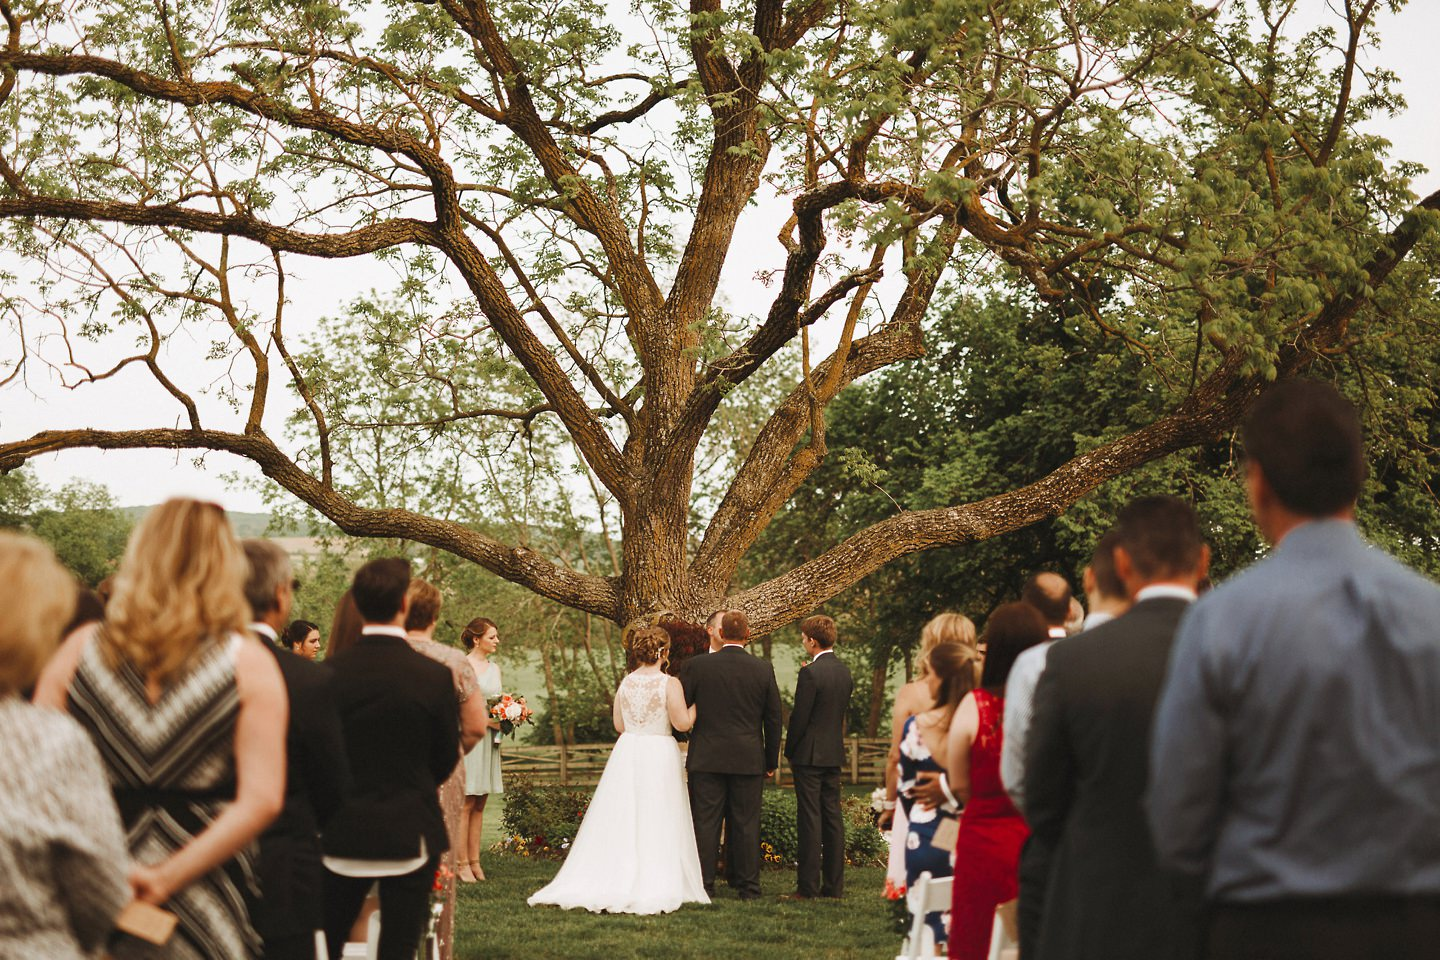 getting married in front of a tree